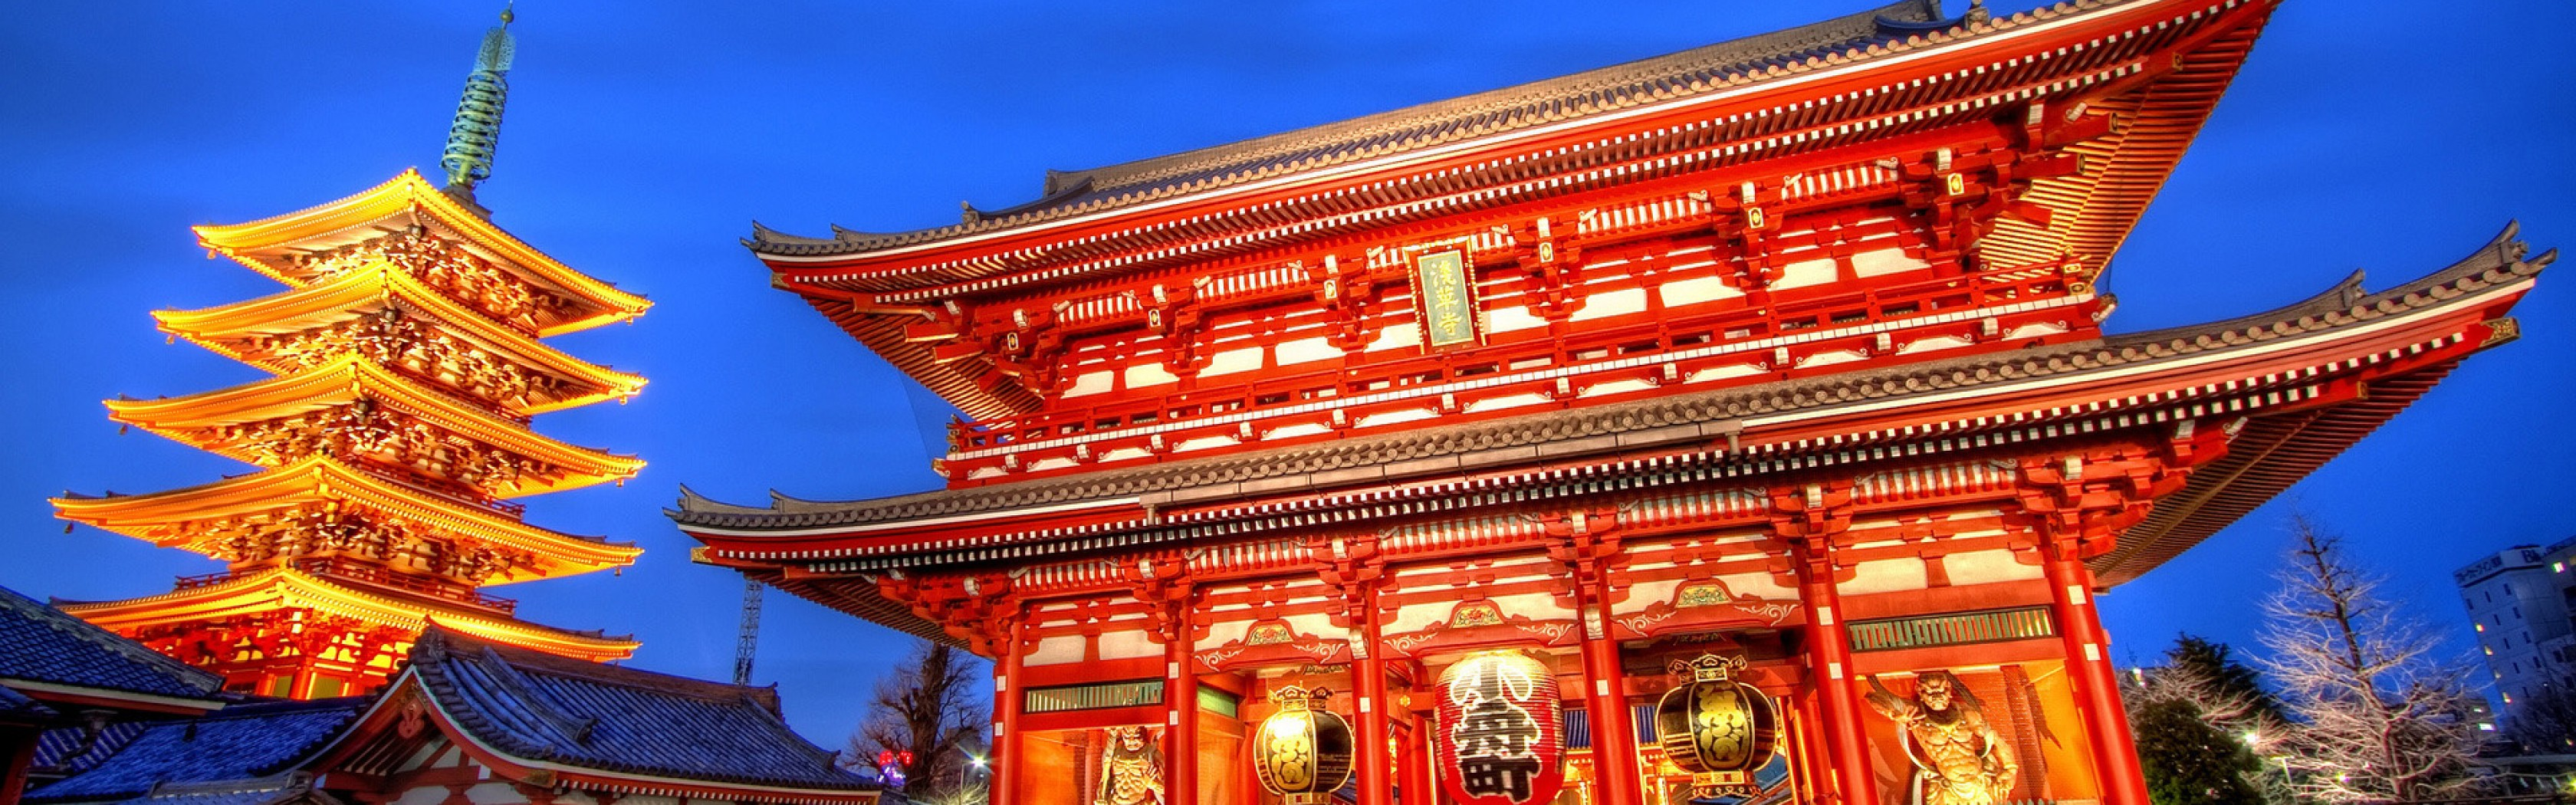 Tokyo temple 3360x1050